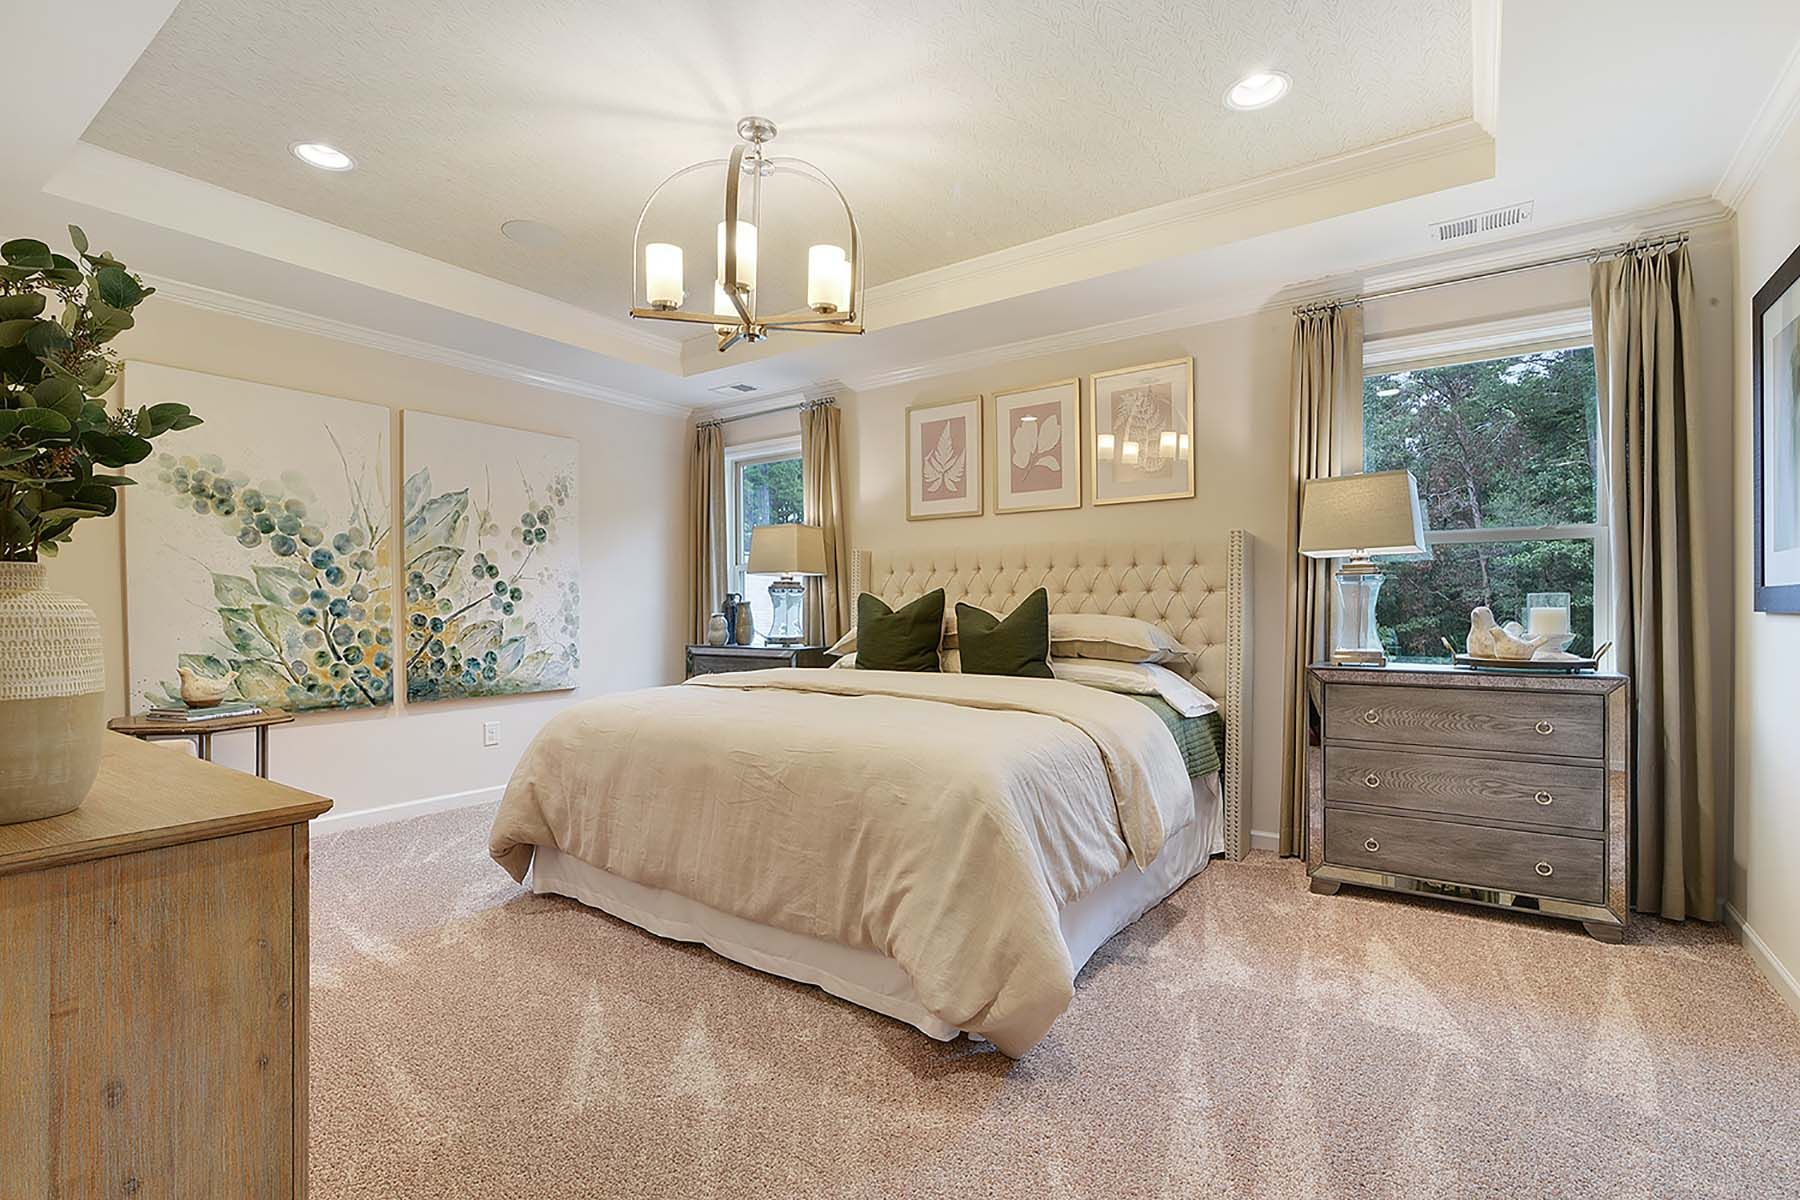 Bedroom featured in the Gaines By Mattamy Homes in Charlotte, NC